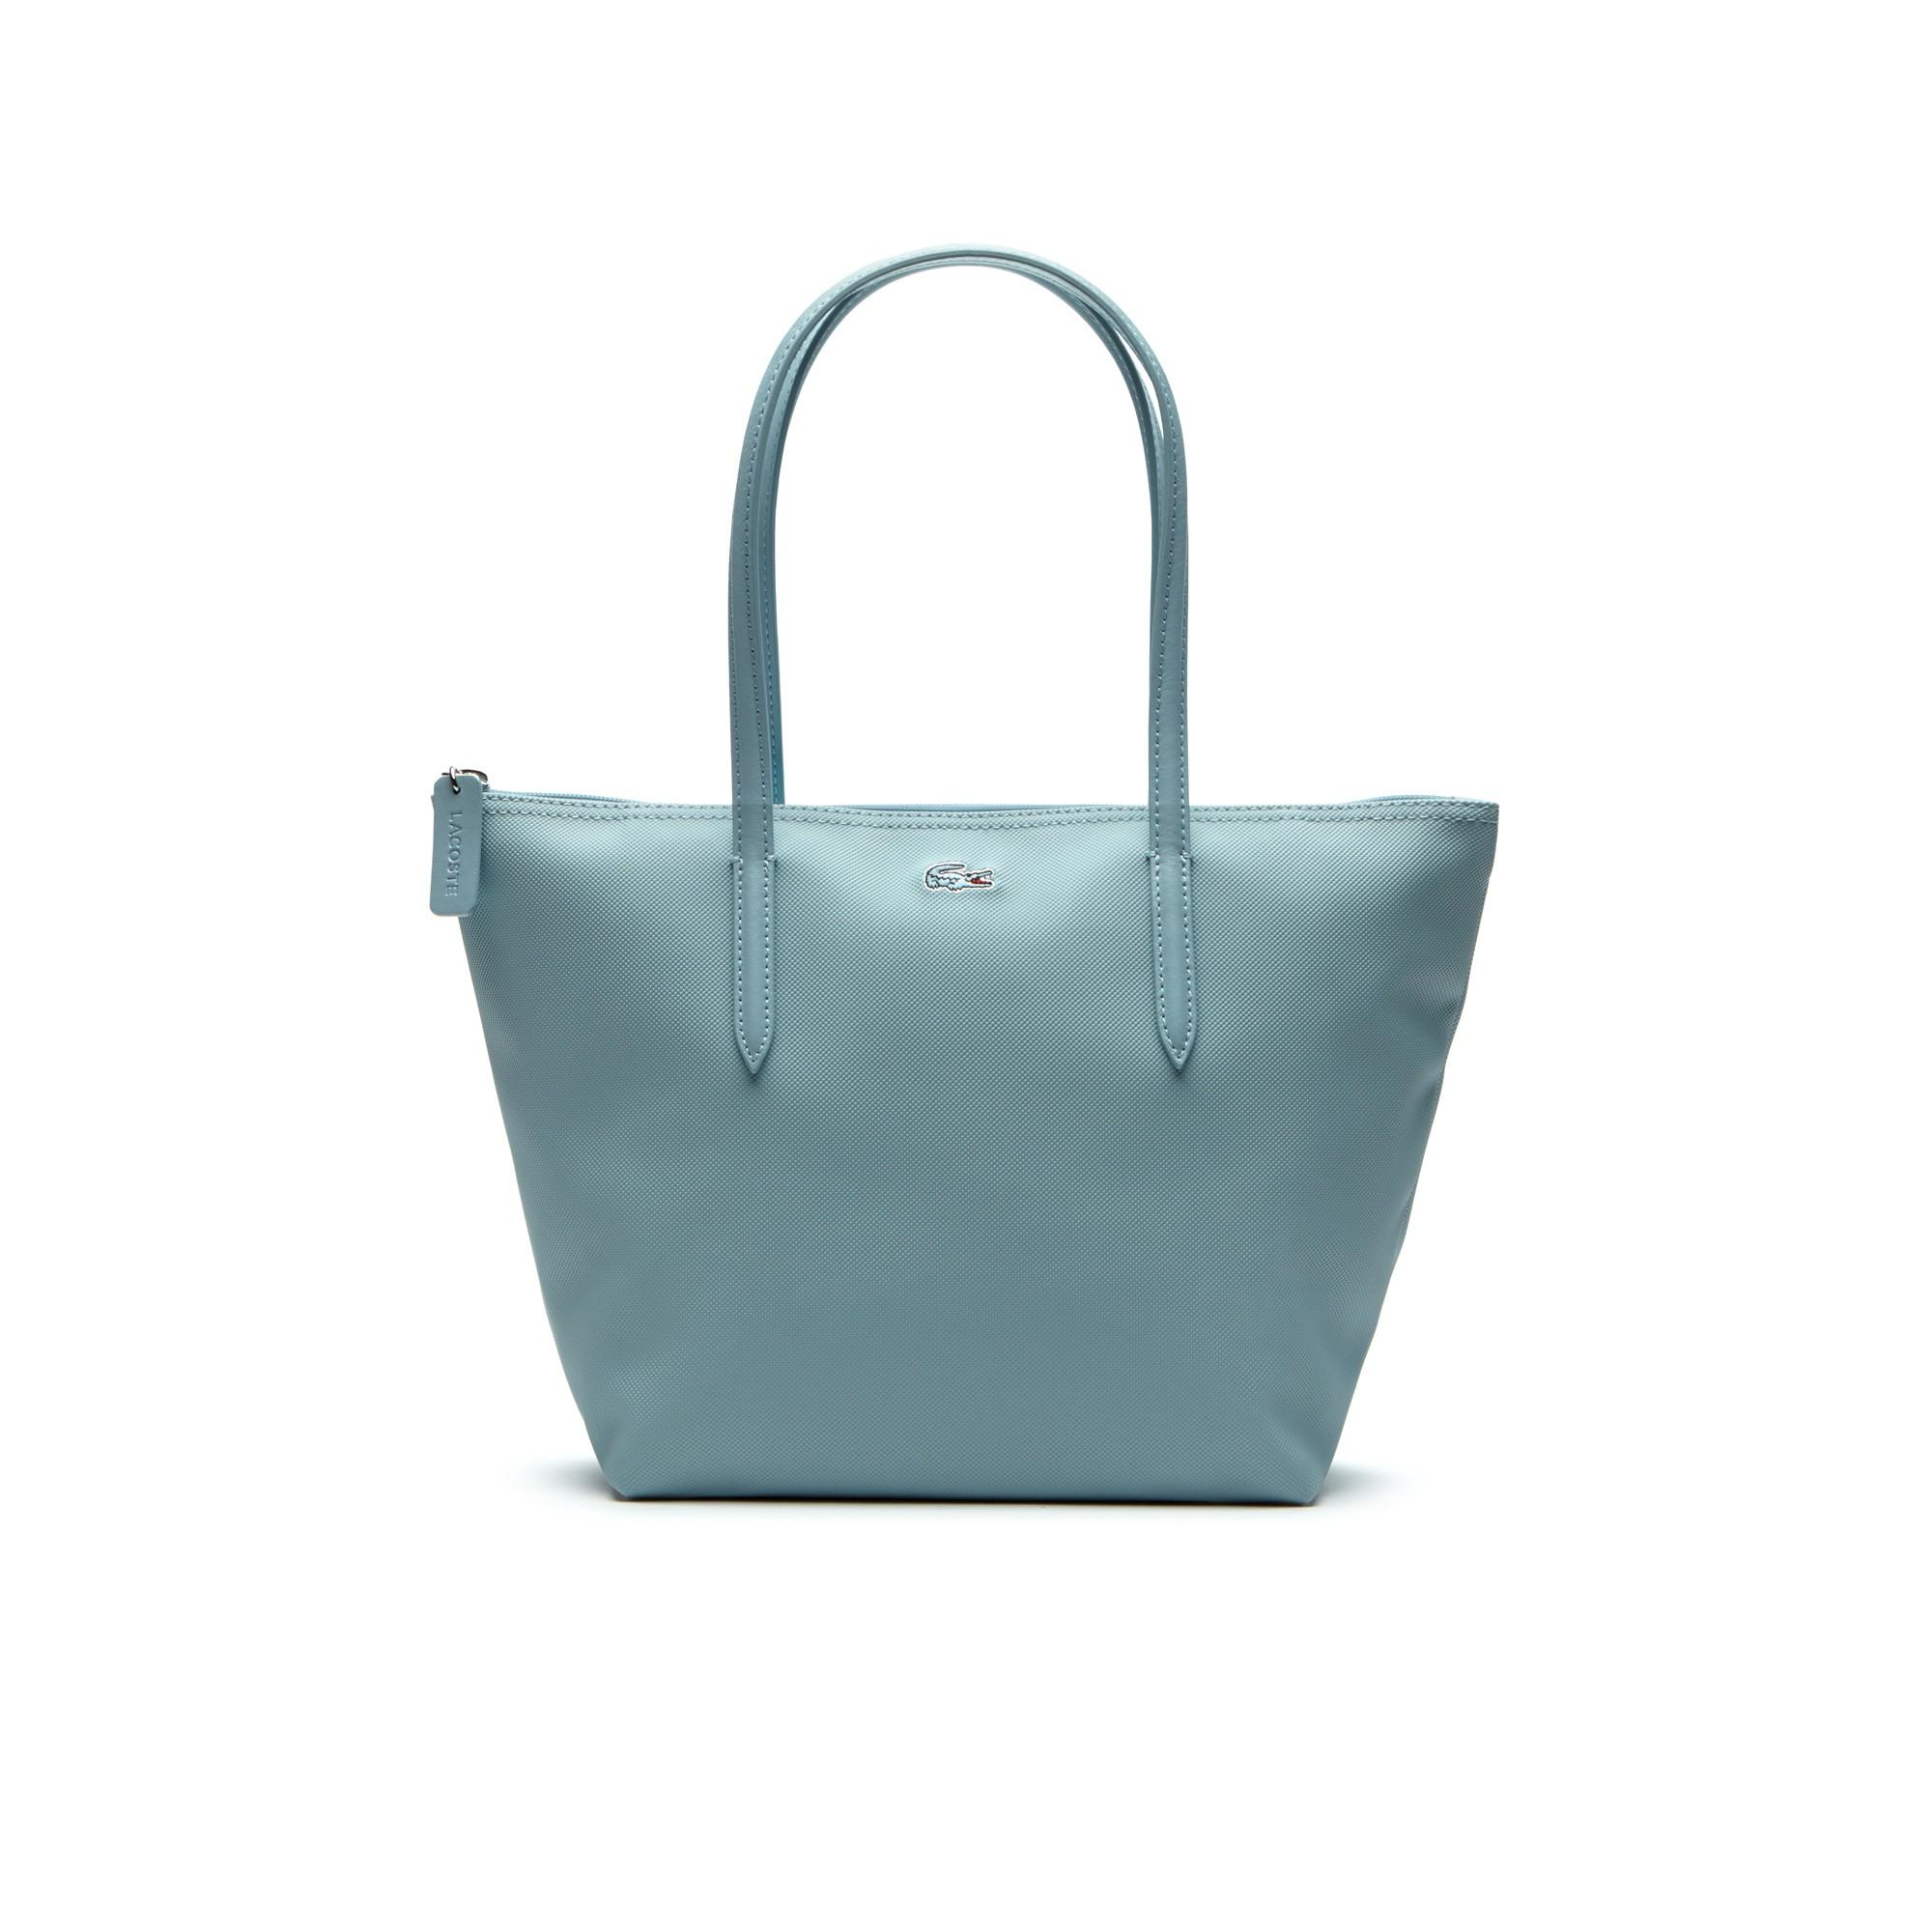 Lacoste Women's L.12.12 Concept Small Zip Tote Bag In Sterling Blue